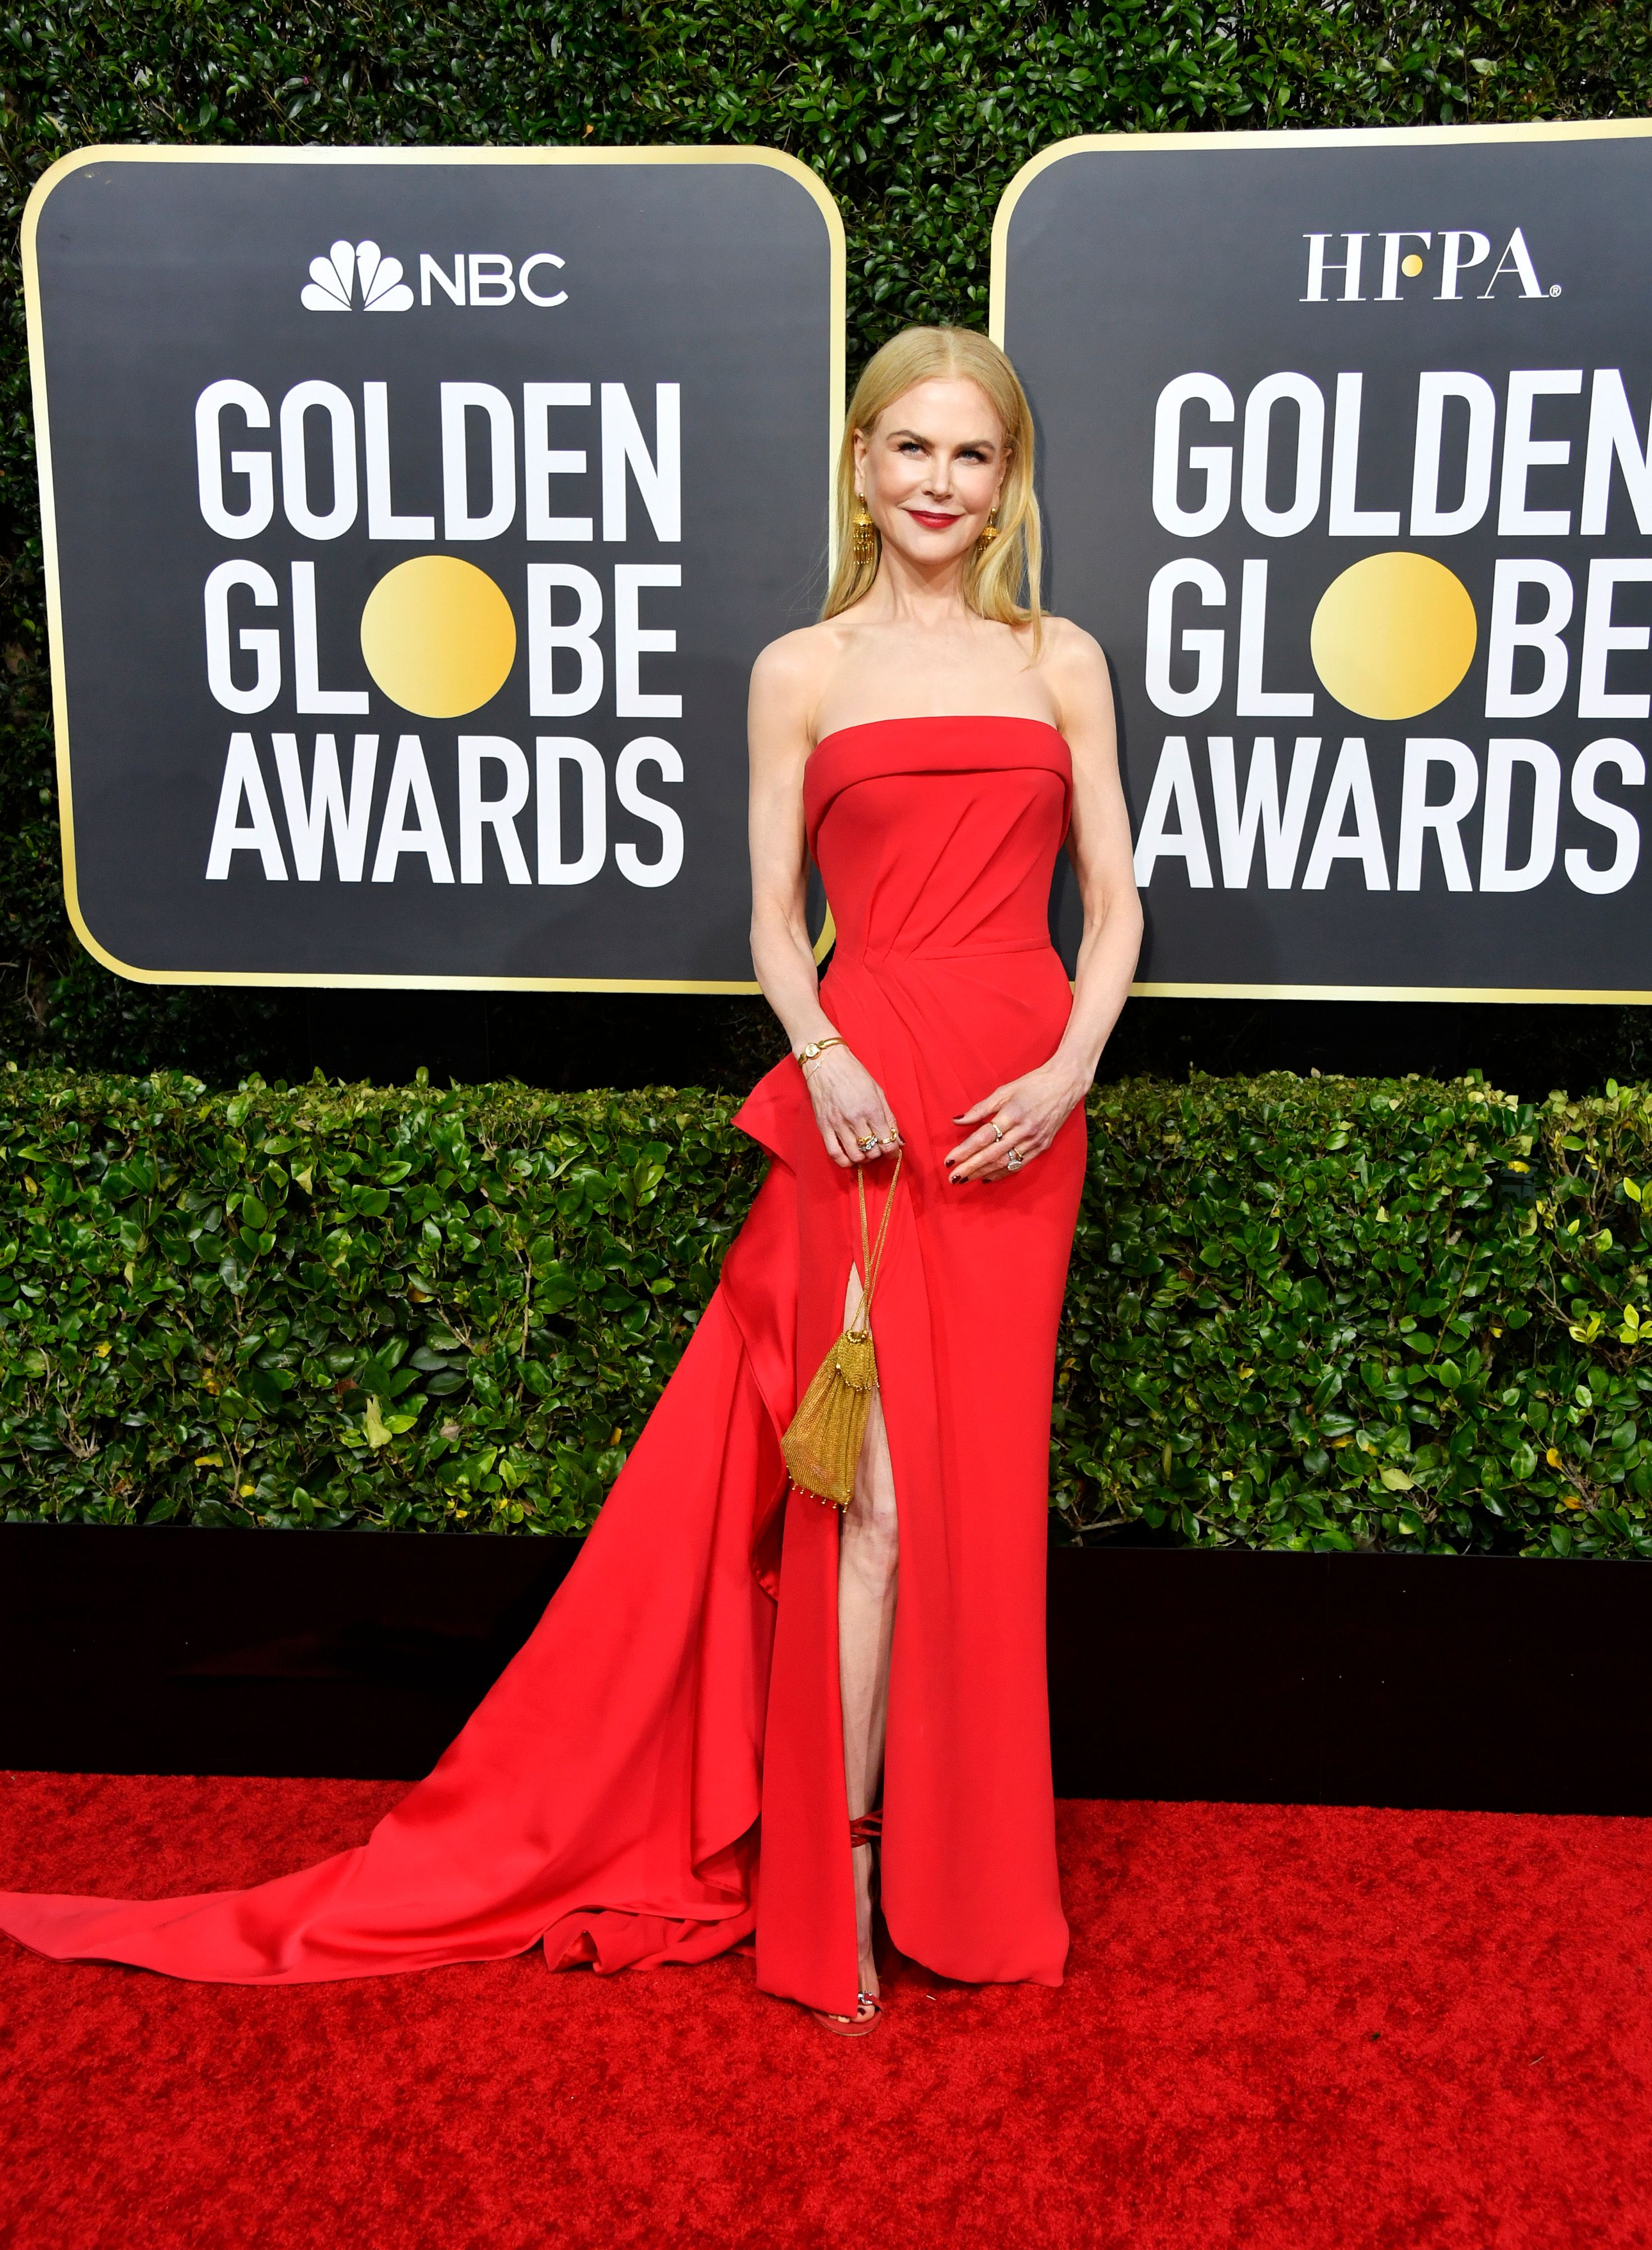 Nicole Kidman looks dazzling in red floor-sweeping dress with matching heel sandals on the red carpet.